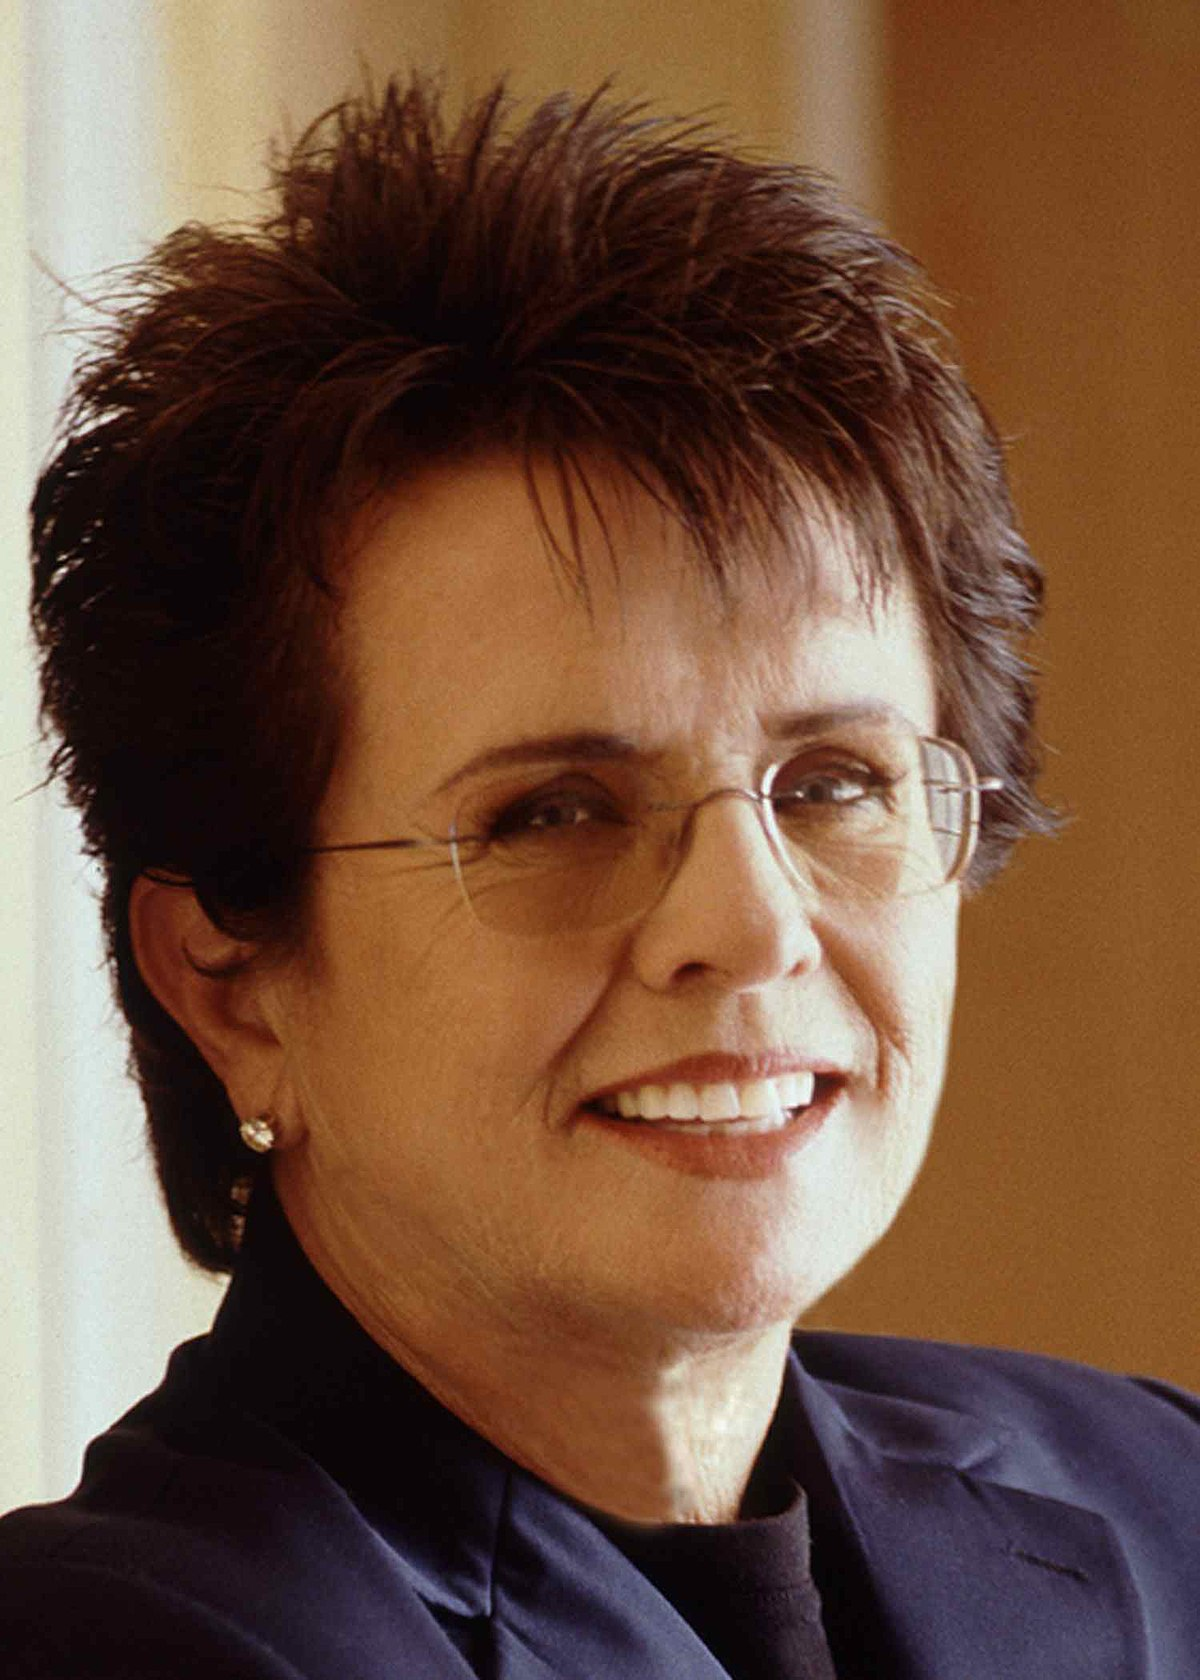 billie jean king - photo #2